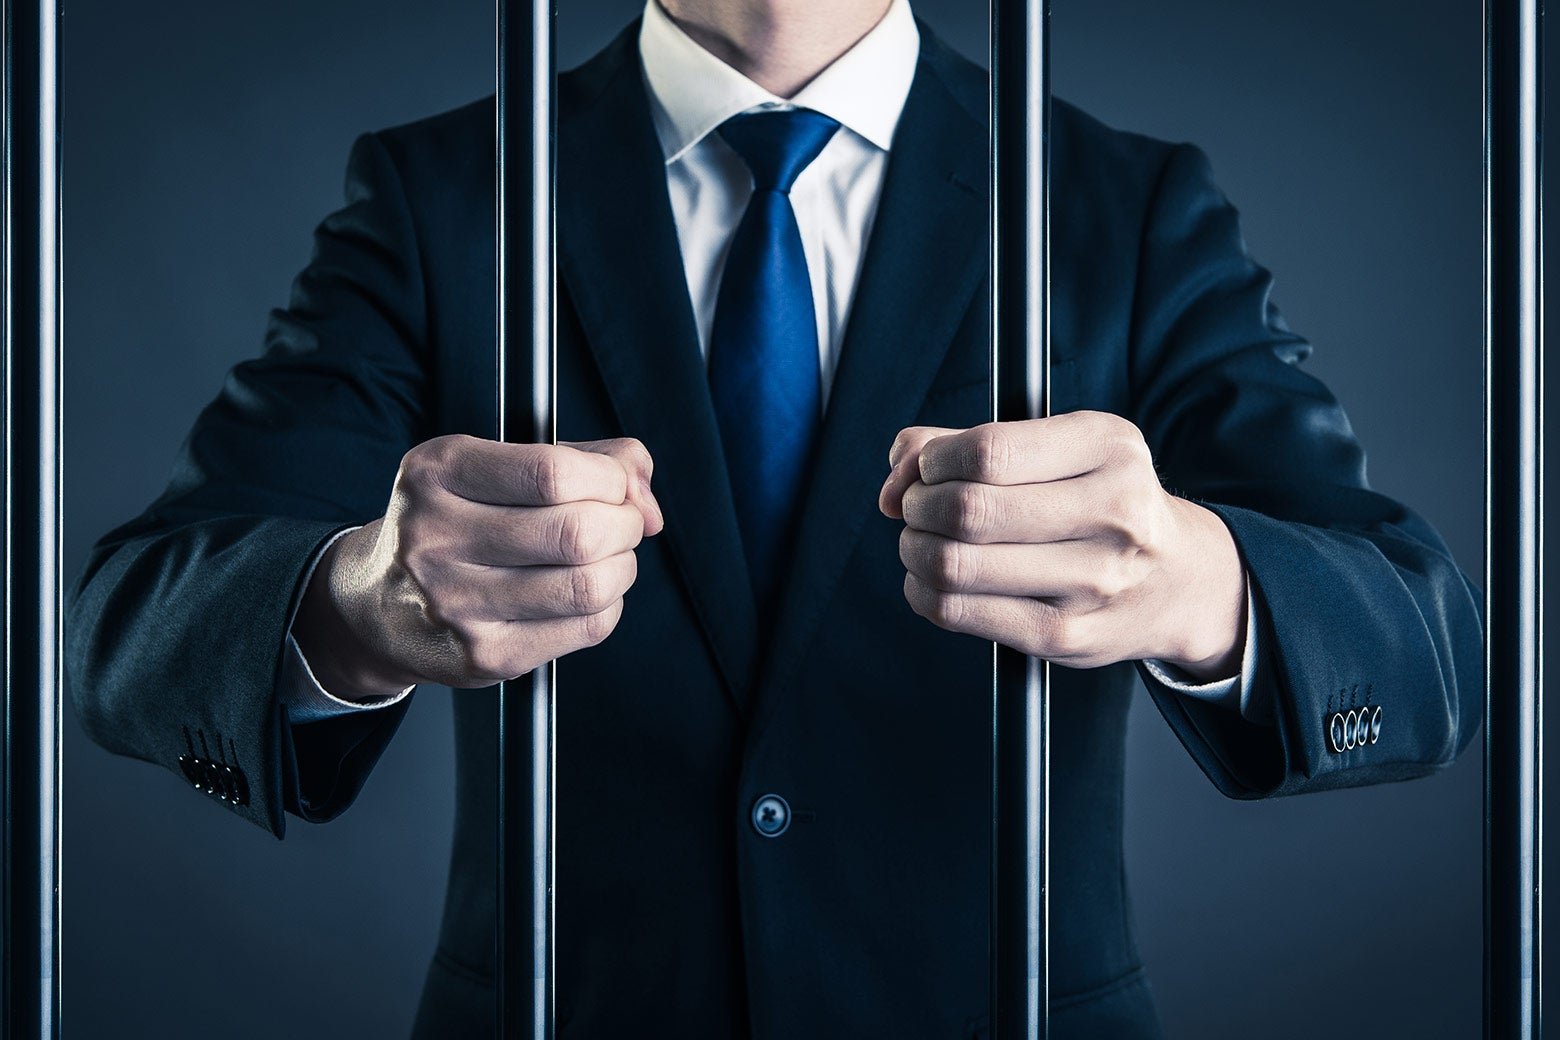 Suited executive behind bars